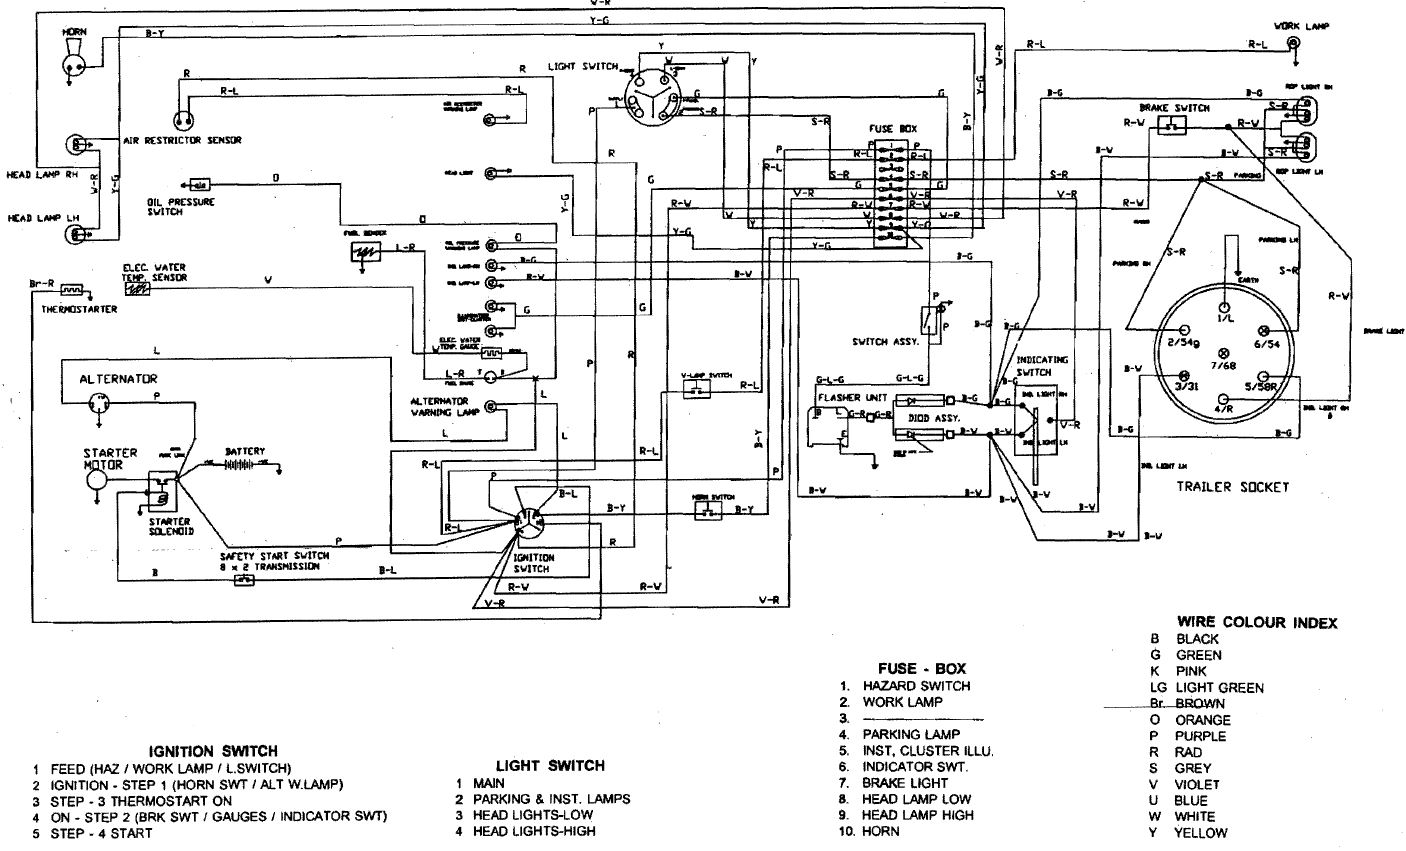 hight resolution of yanmar ignition switch wiring diagram wiring diagram todays rh 16 17 8 1813weddingbarn com yanmar alternator